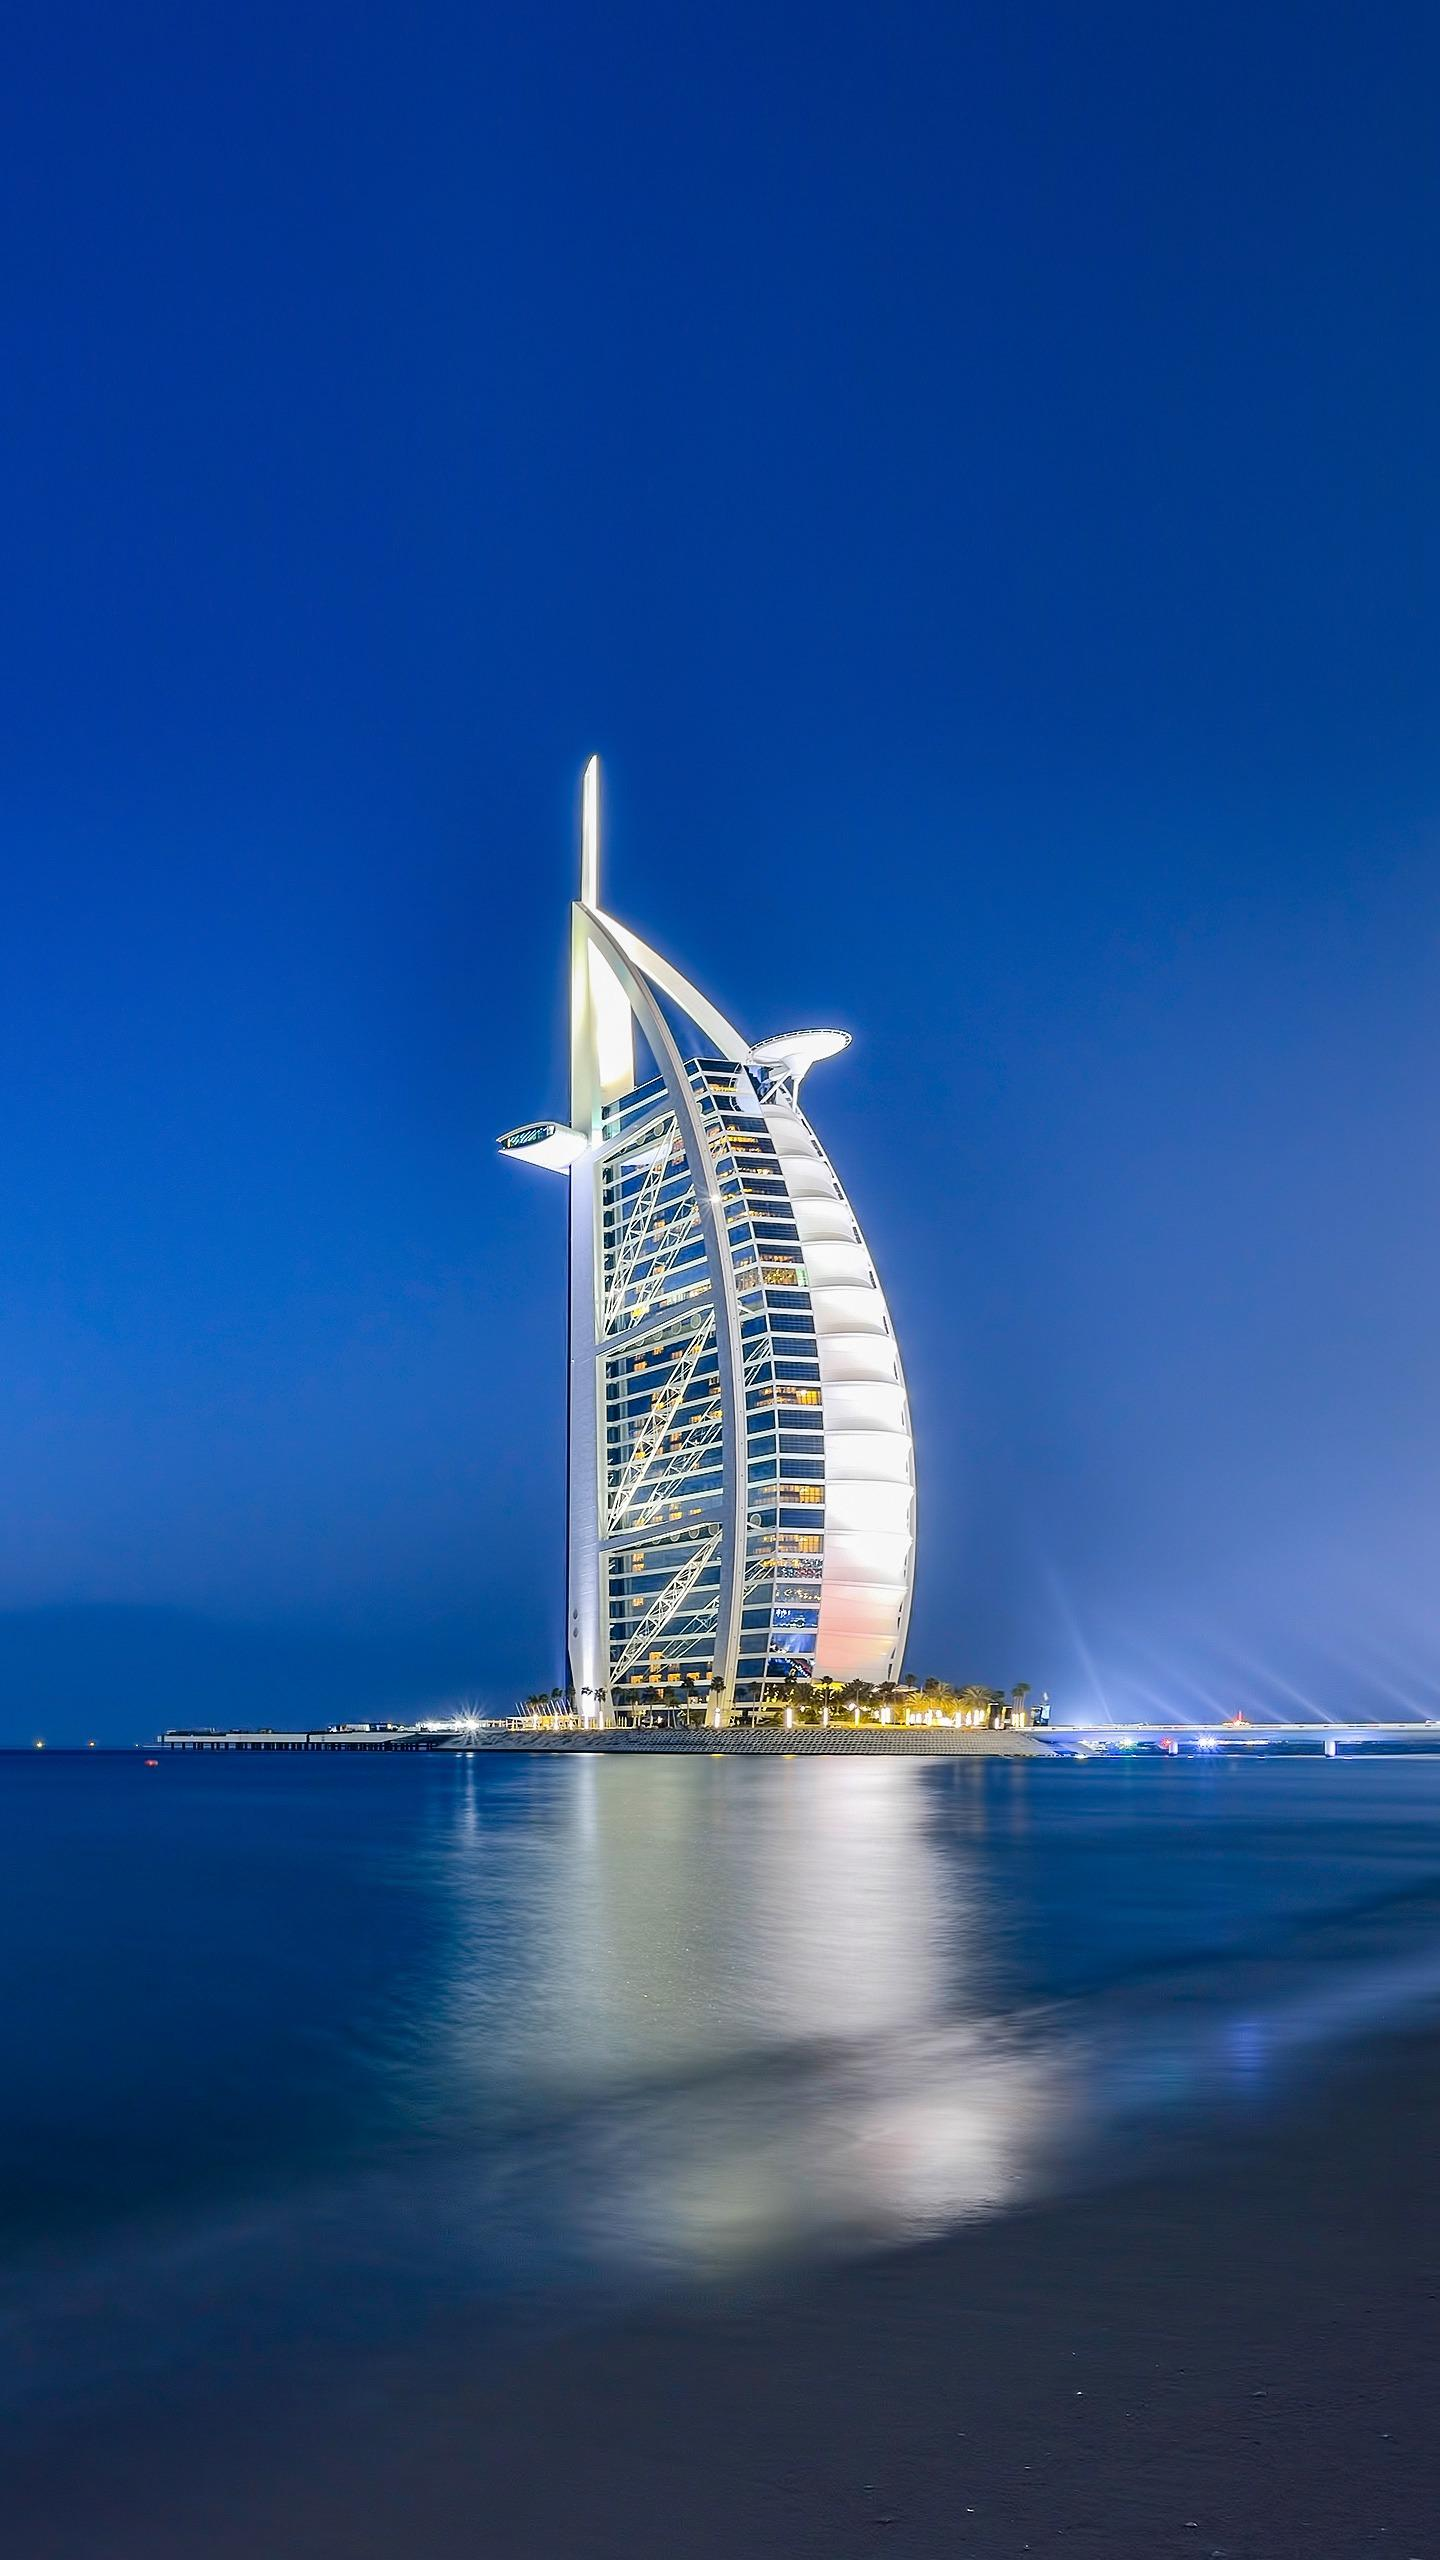 Burj Al Arab. The Arabian Tower Hotel is also known as the Dubai Sailing Hotel because of its shape resembling a sail. It is known for its splendid and luxurious style.